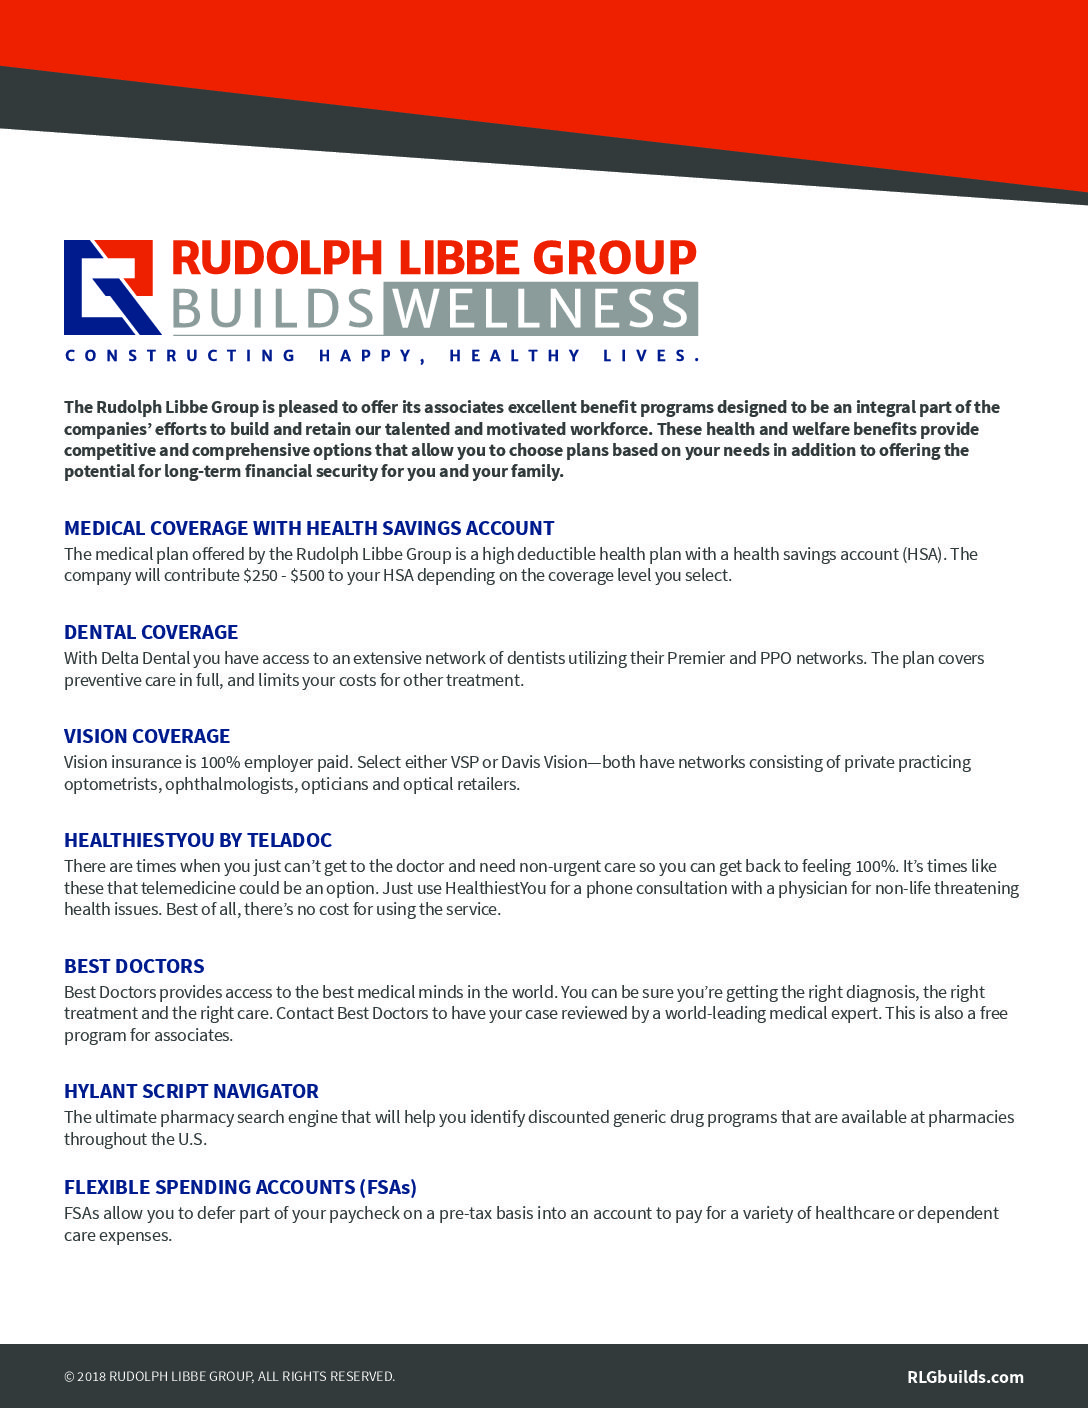 Rudolph Libbe Group Benefits Summary